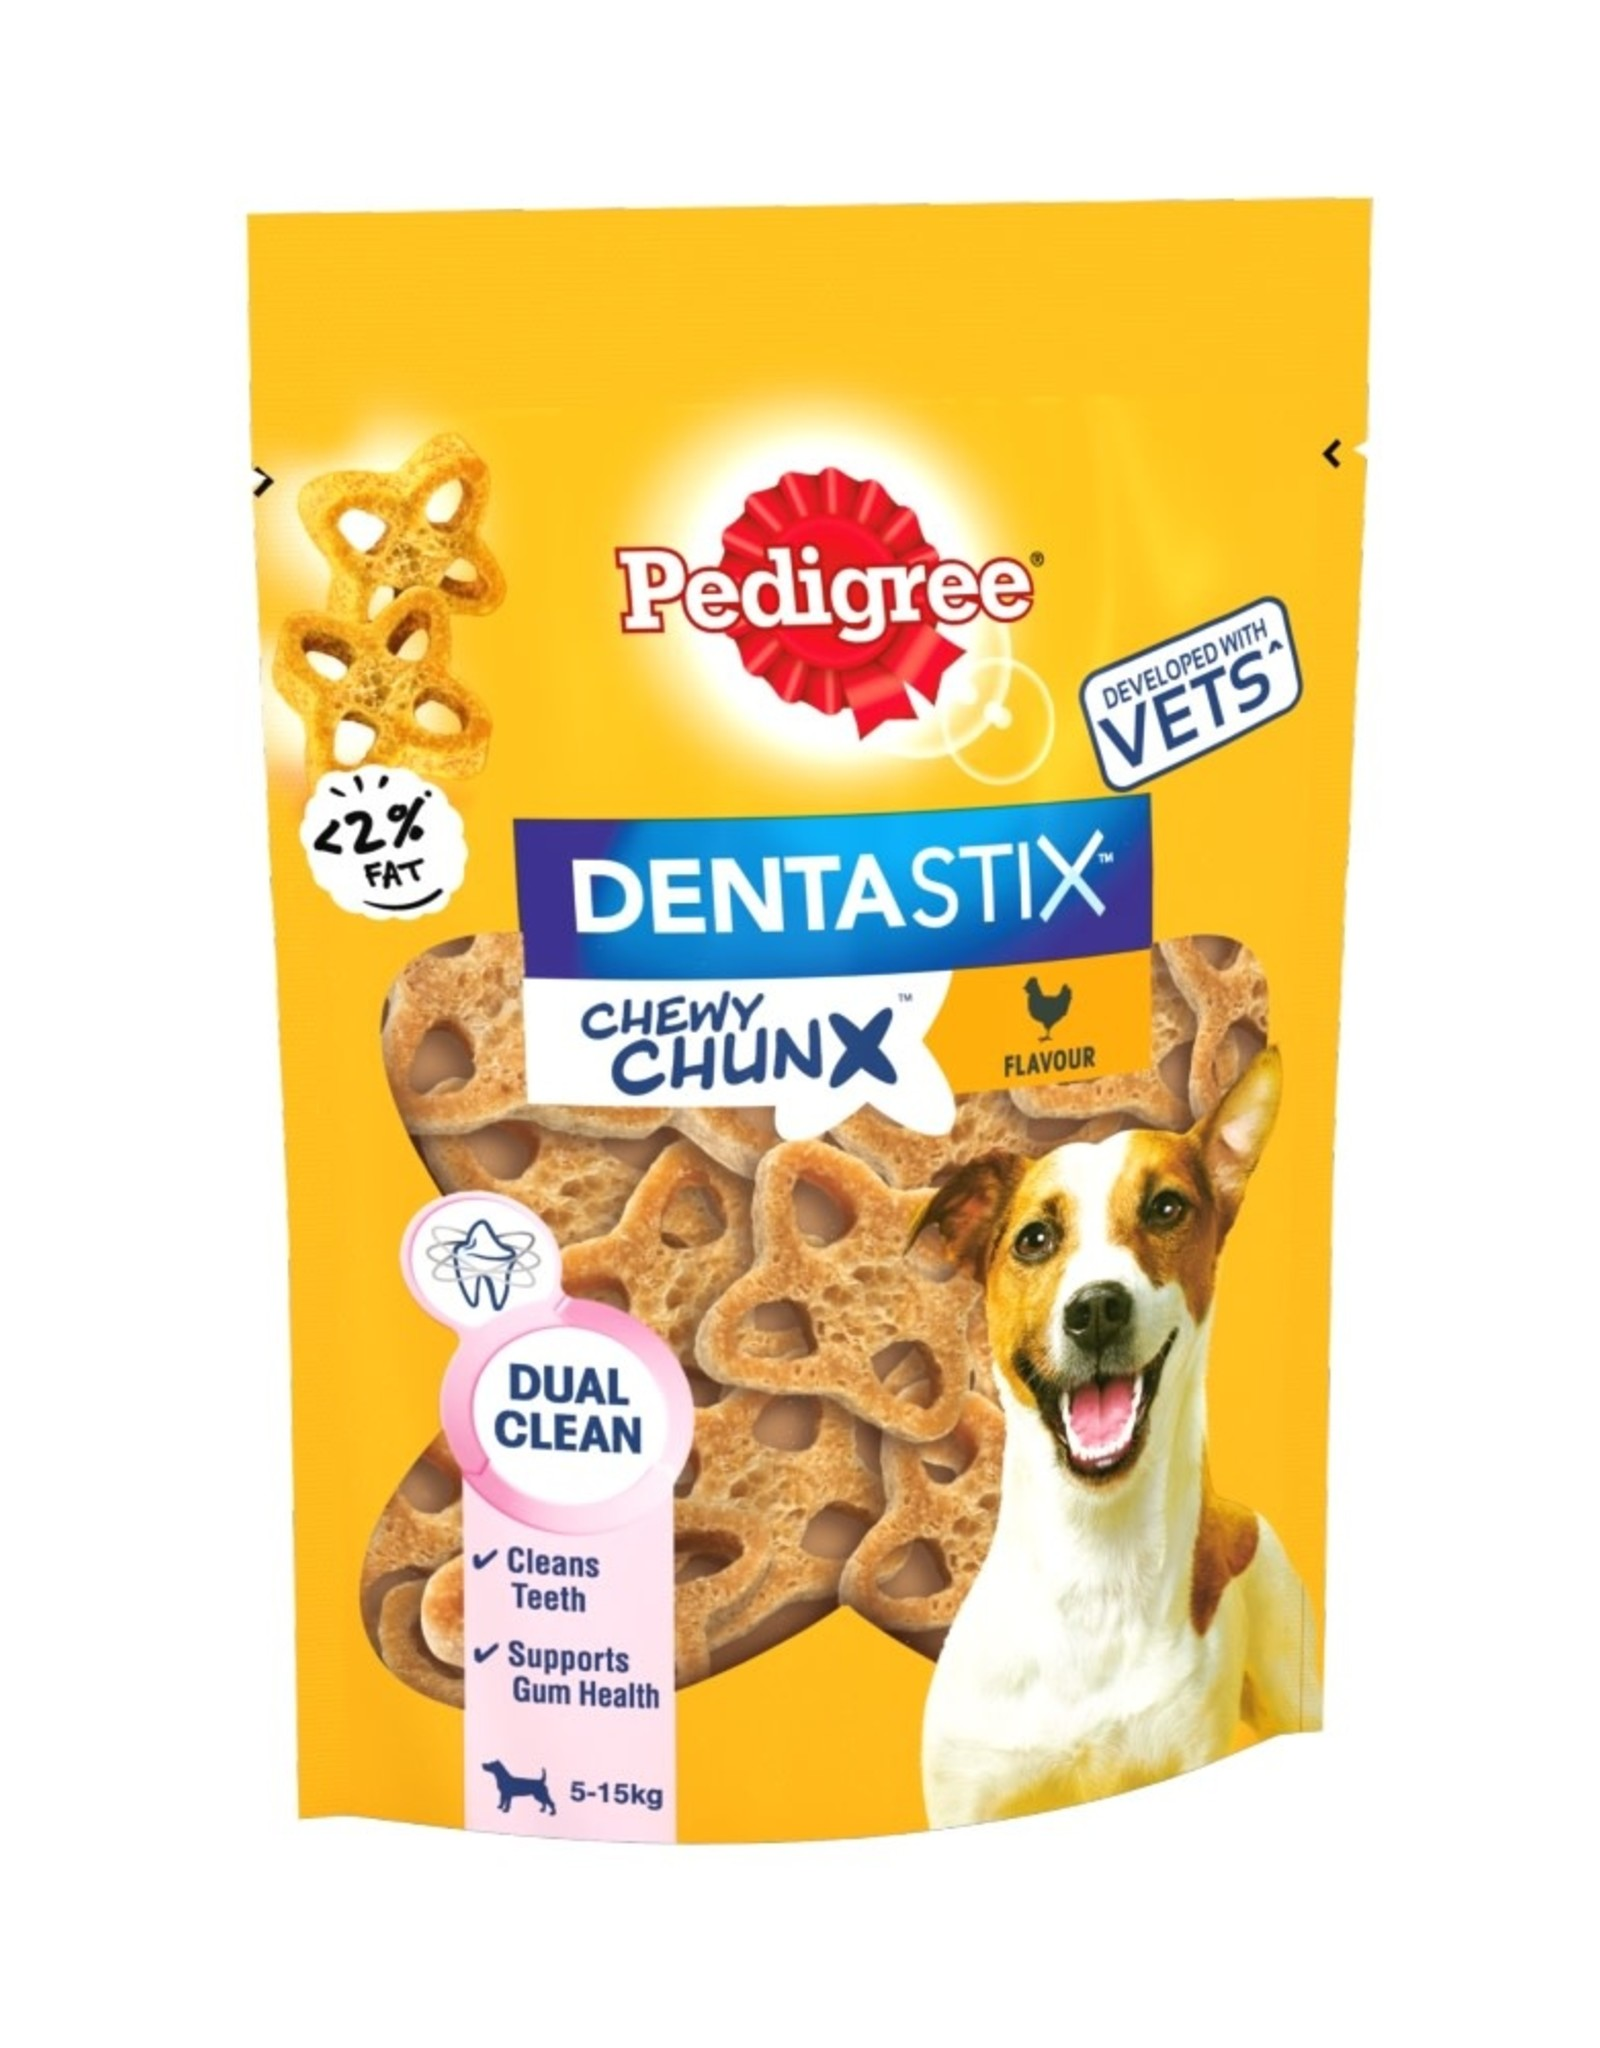 Pedigree Dentastix Chewy Chunx Mini Dog Treats Chicken Flavour 68g